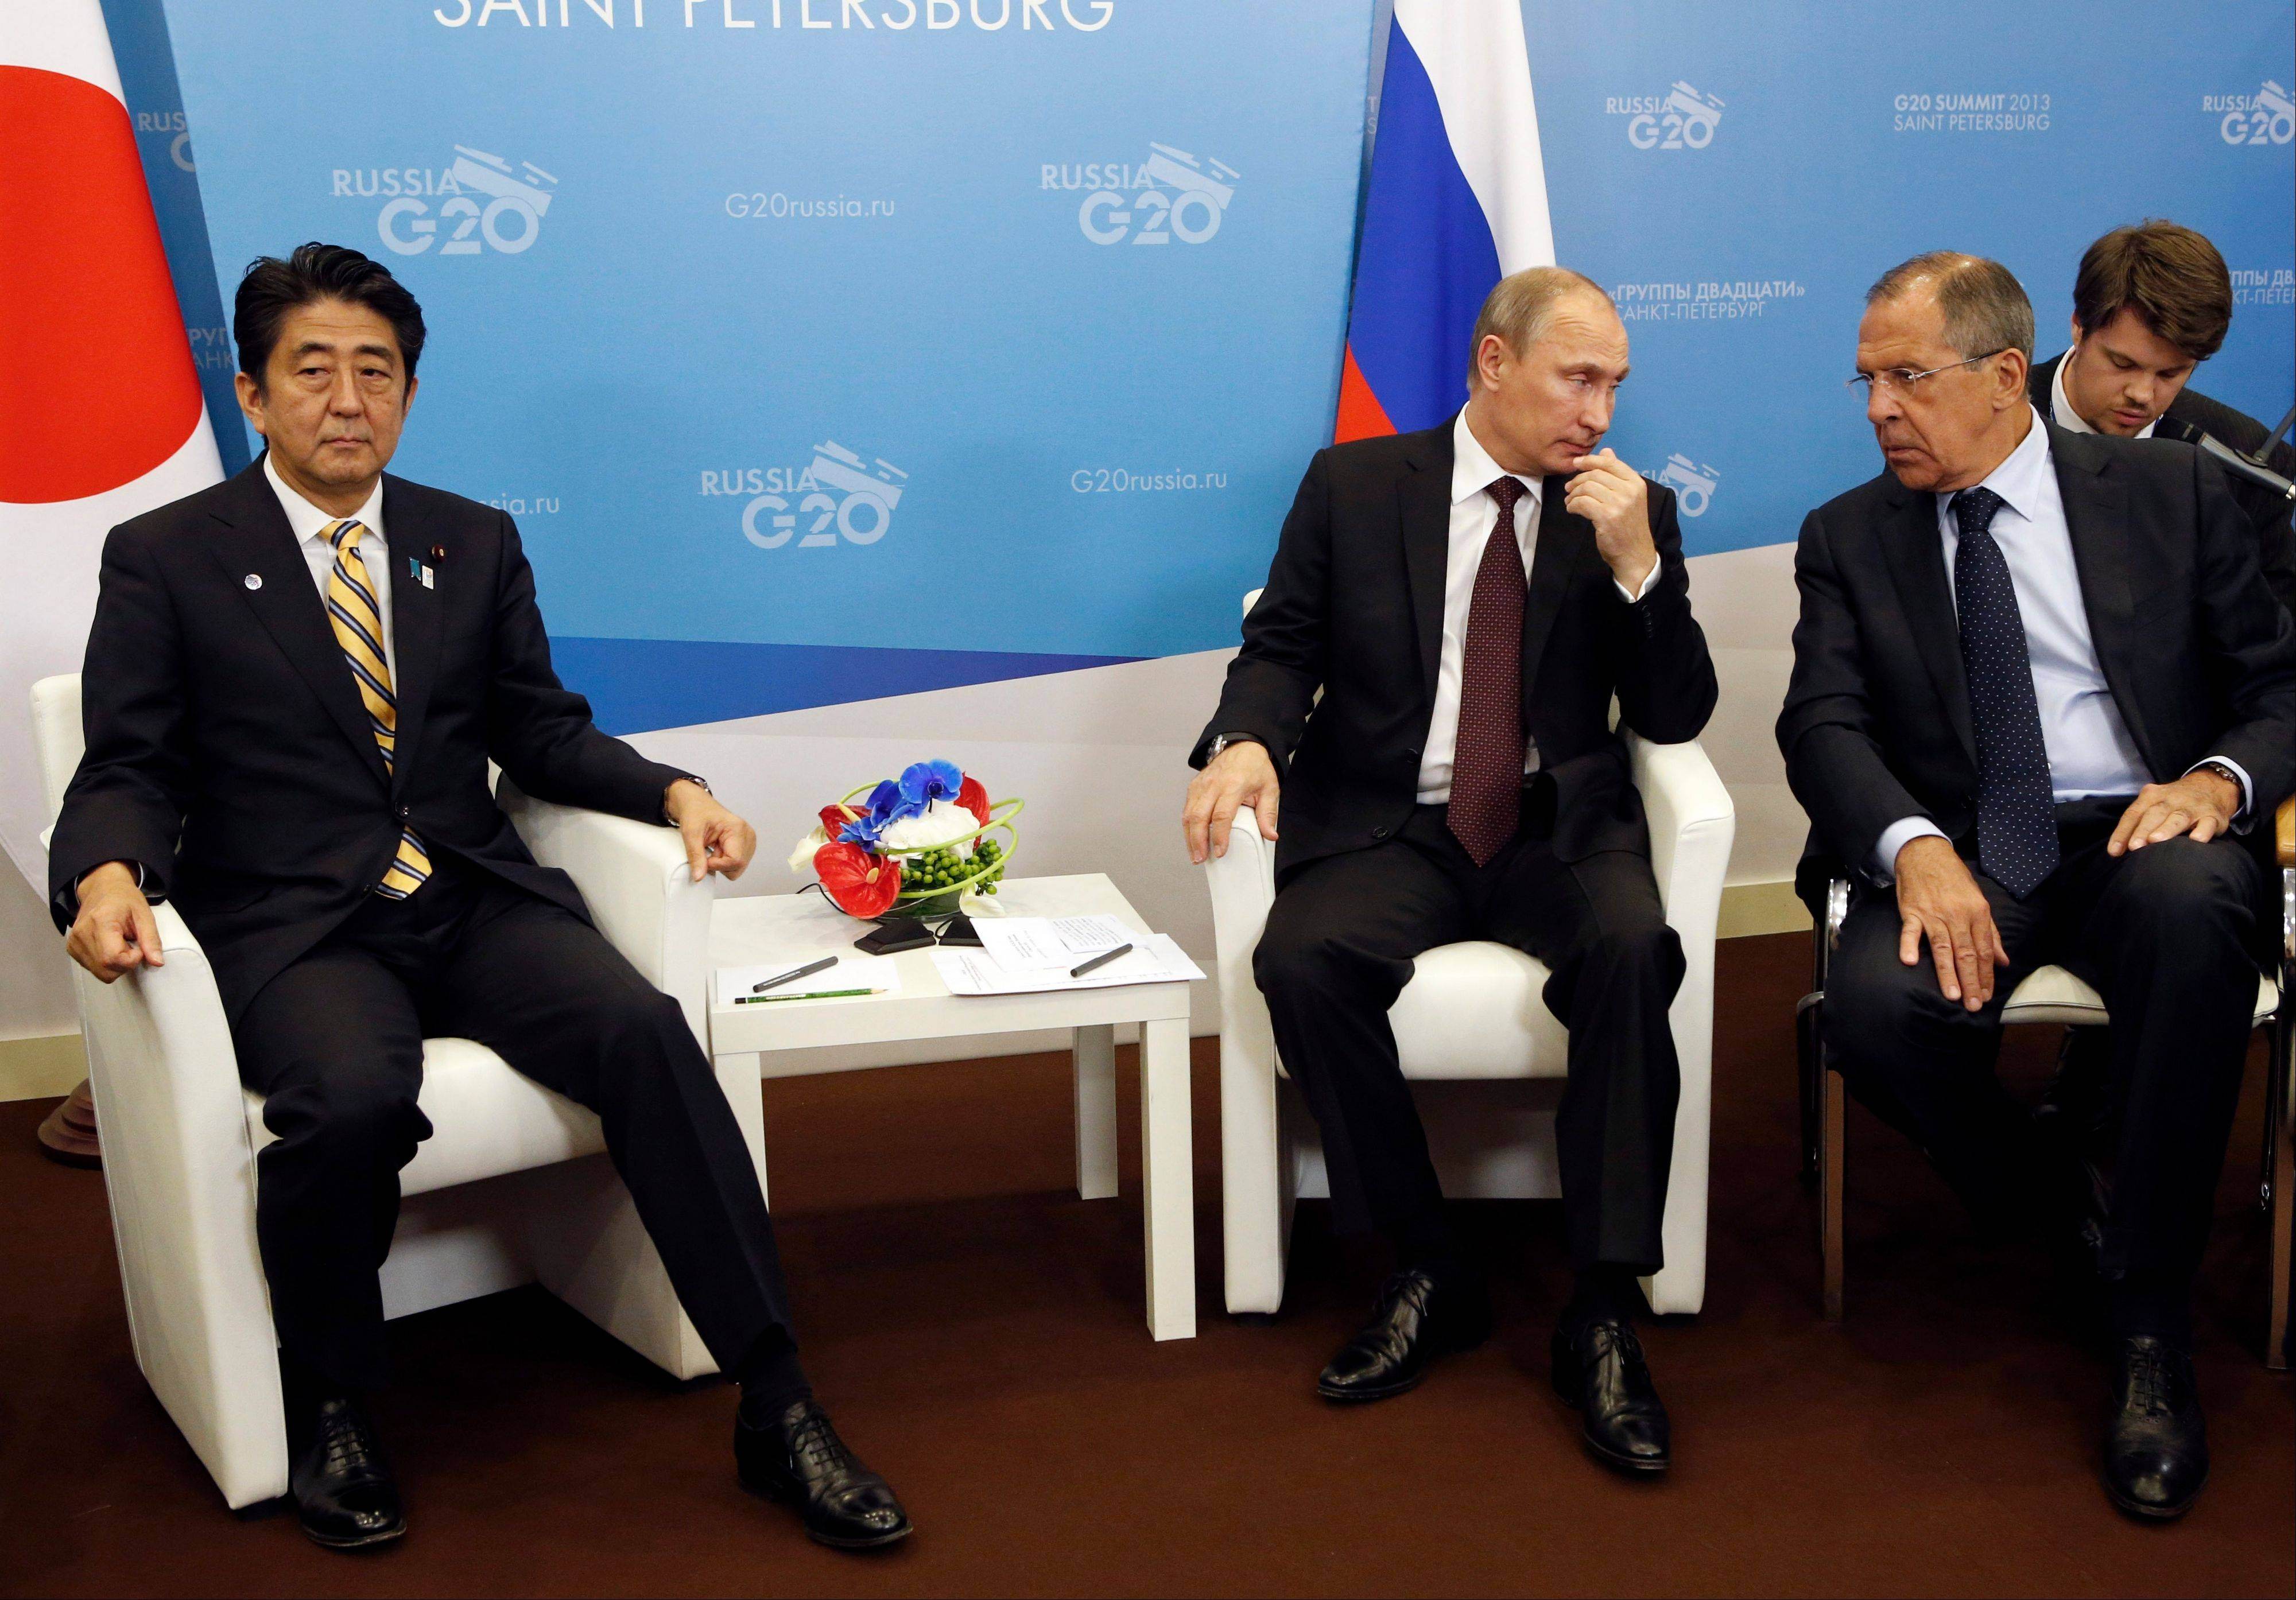 Russia�s President Vladimir Putin, third from right, speaks Thursday with Russian Foreign Minister Sergey Lavrov, second from right, while meeting with Japan�s Prime Minister Shinzo Abe, left, on the sidelines of a G-20 summit in St. Petersburg, Russia.